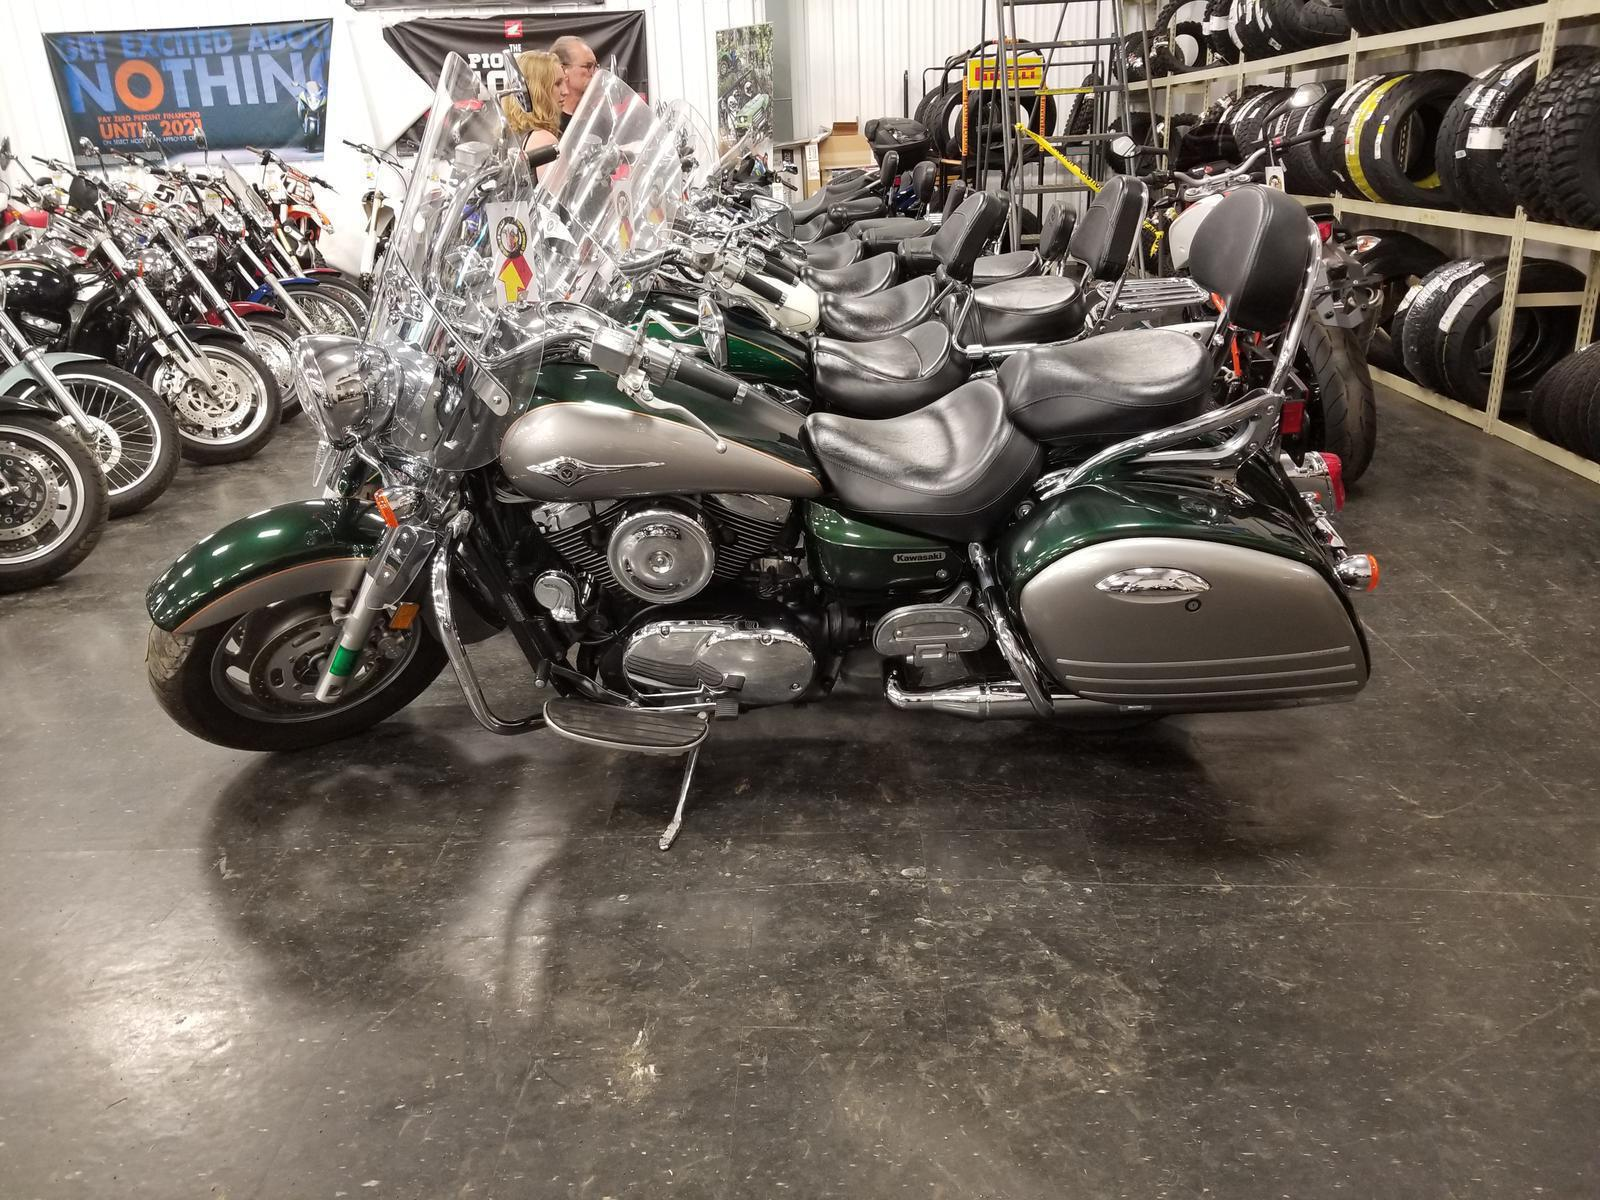 2006 Kawasaki Vulcan 1600 Nomad For Sale In Johnstown Pa Cernics Fuel Filter 20180703 175325